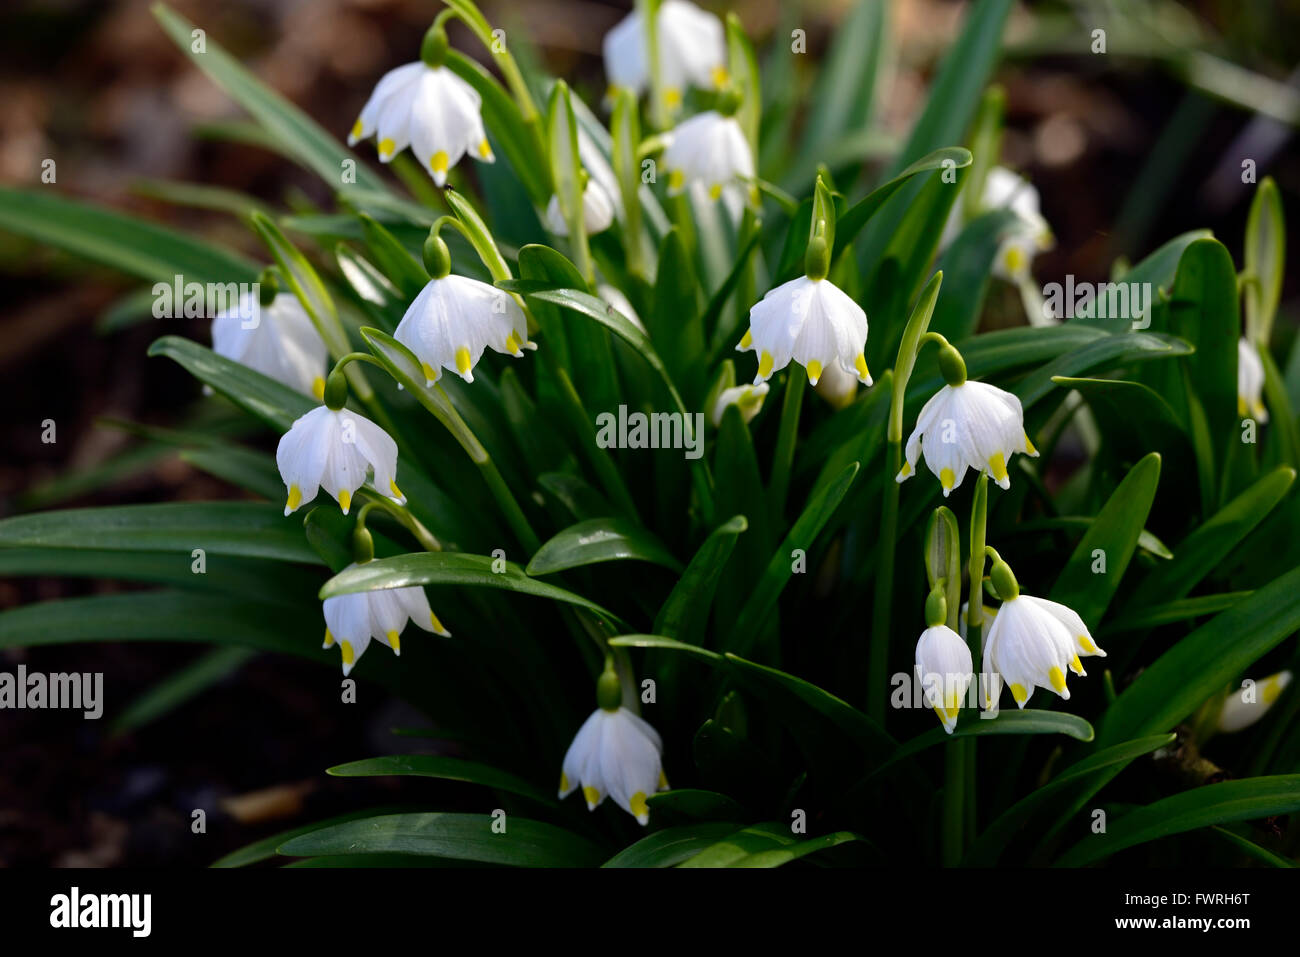 Bell shaped yellow flower stock photos bell shaped yellow flower leucojum vernum var carpathicum spring snowflake flowers flower clump forming white bloom blossom bell shaped shape mightylinksfo